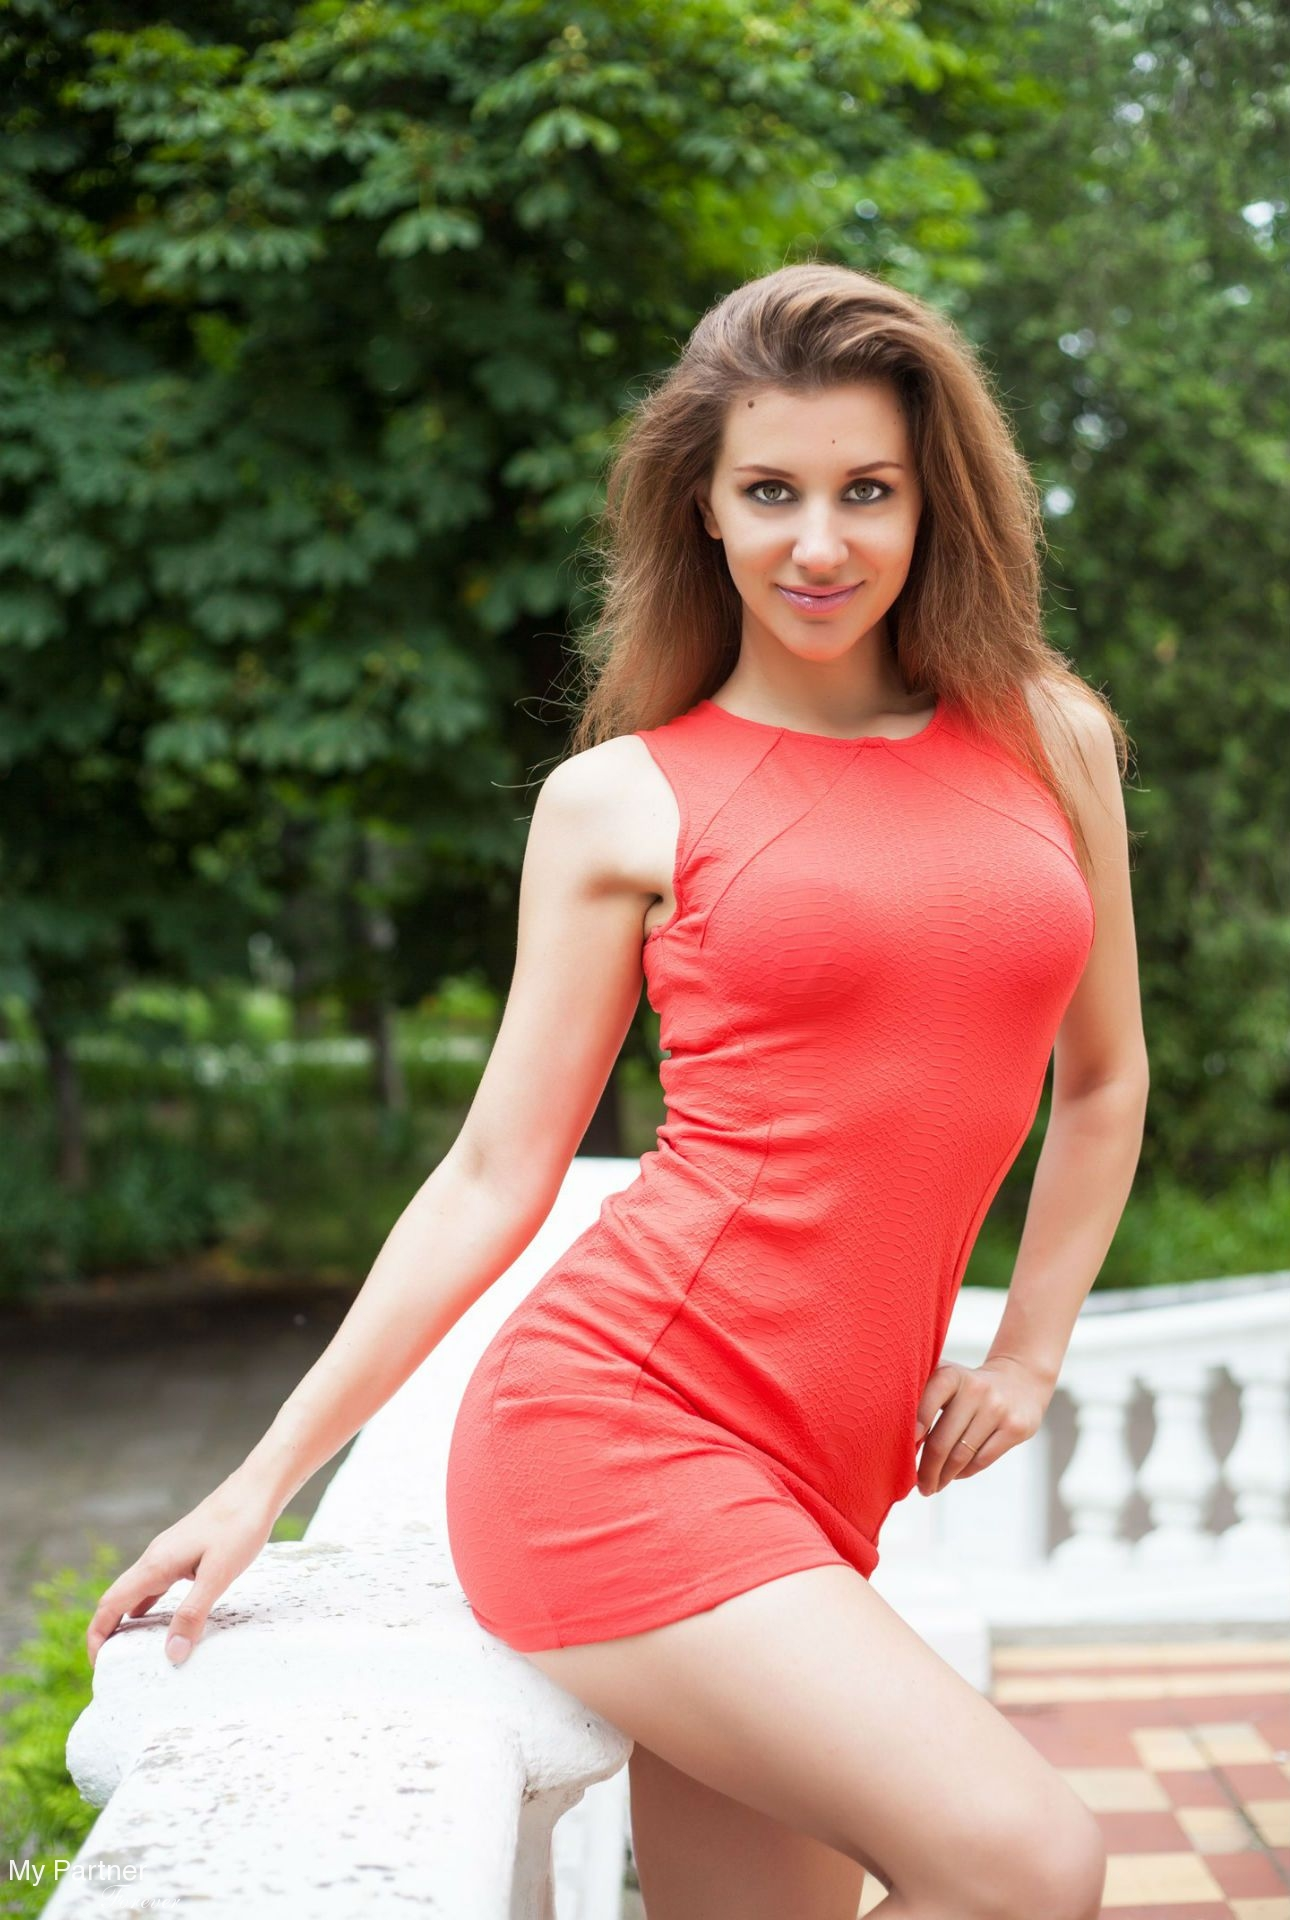 russian-girl-for-marriage-young-virgin-pussy-photos